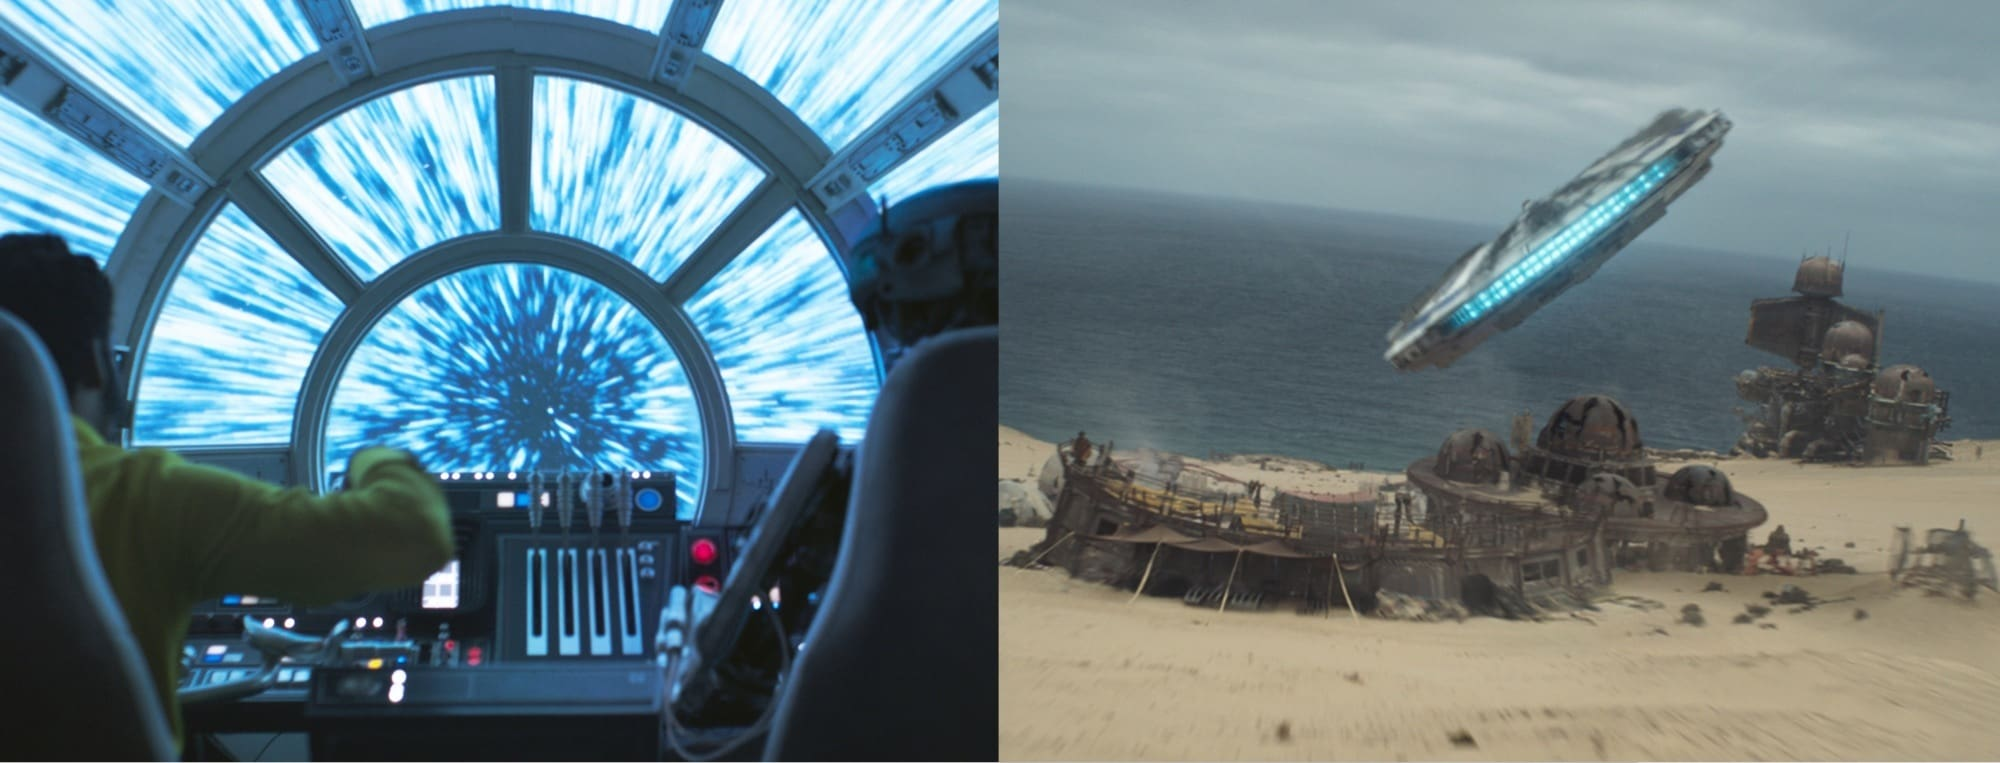 Millennium Falcon cockpit and at the Savareen refinery